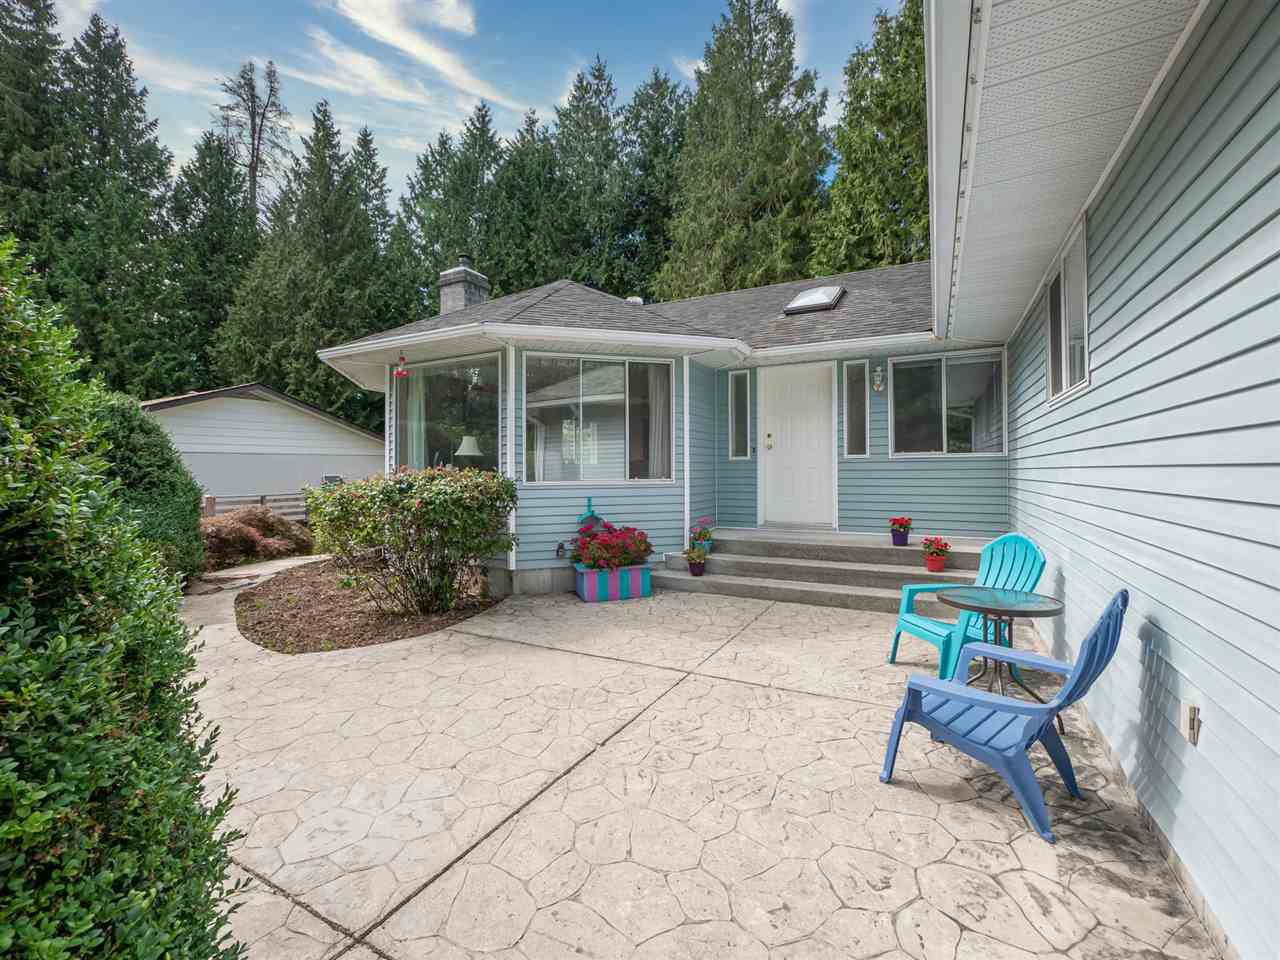 Main Photo: 7639 EUREKA Avenue in Halfmoon Bay: Halfmn Bay Secret Cv Redroofs House for sale (Sunshine Coast)  : MLS®# R2488854